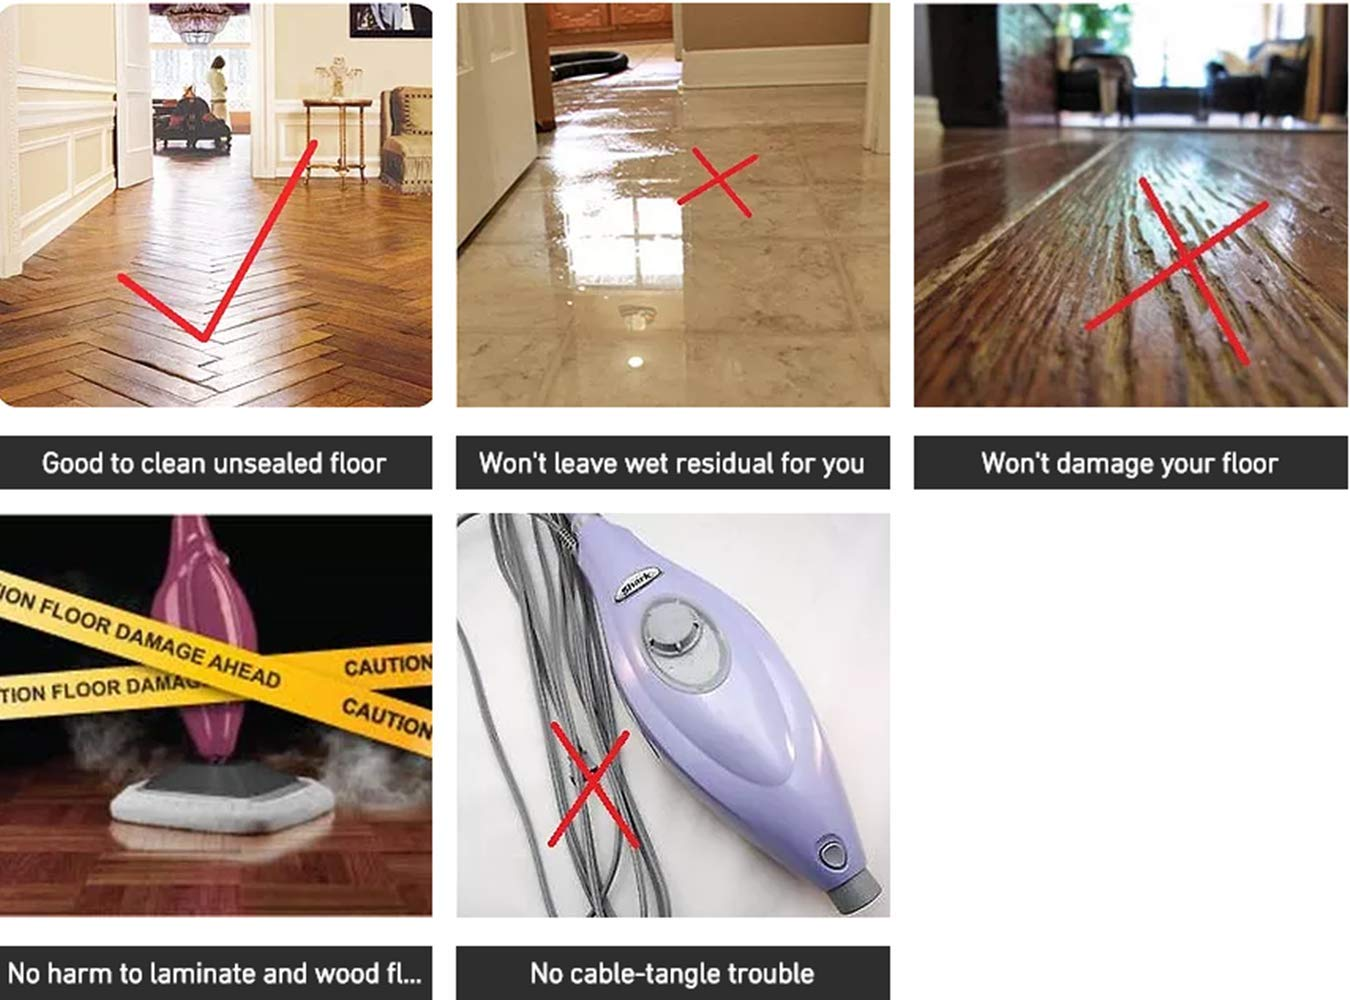 Electric Mops for Floor Cleaning -Mamibot Mopa580 Power Fresh 3-in-1 Multifunctional Cordless Electric Polisher waxer mop for All Flat Hard Floor Cleaning Marble Tile with Adjustable Handle by Mamibot (Image #8)